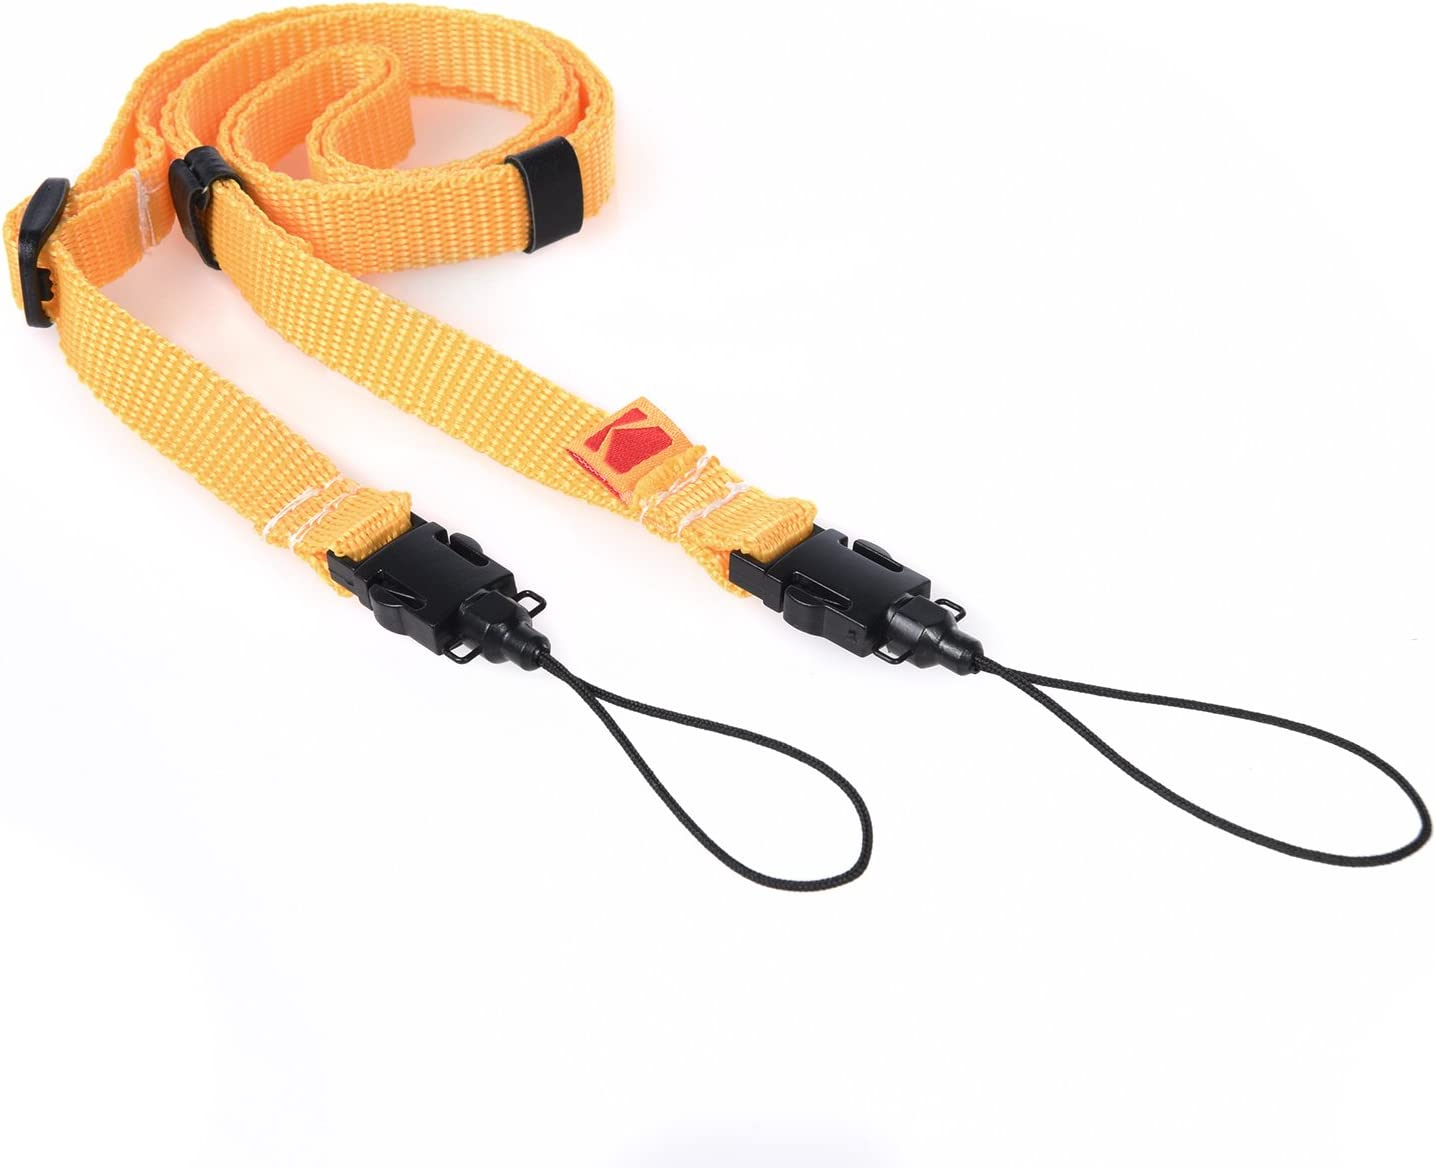 Kodak Printomatic Camera Neck Strap (Yellow) – Adjustable, Convenient, Practical – The Easiest Way to Capture Every Kodak Moment